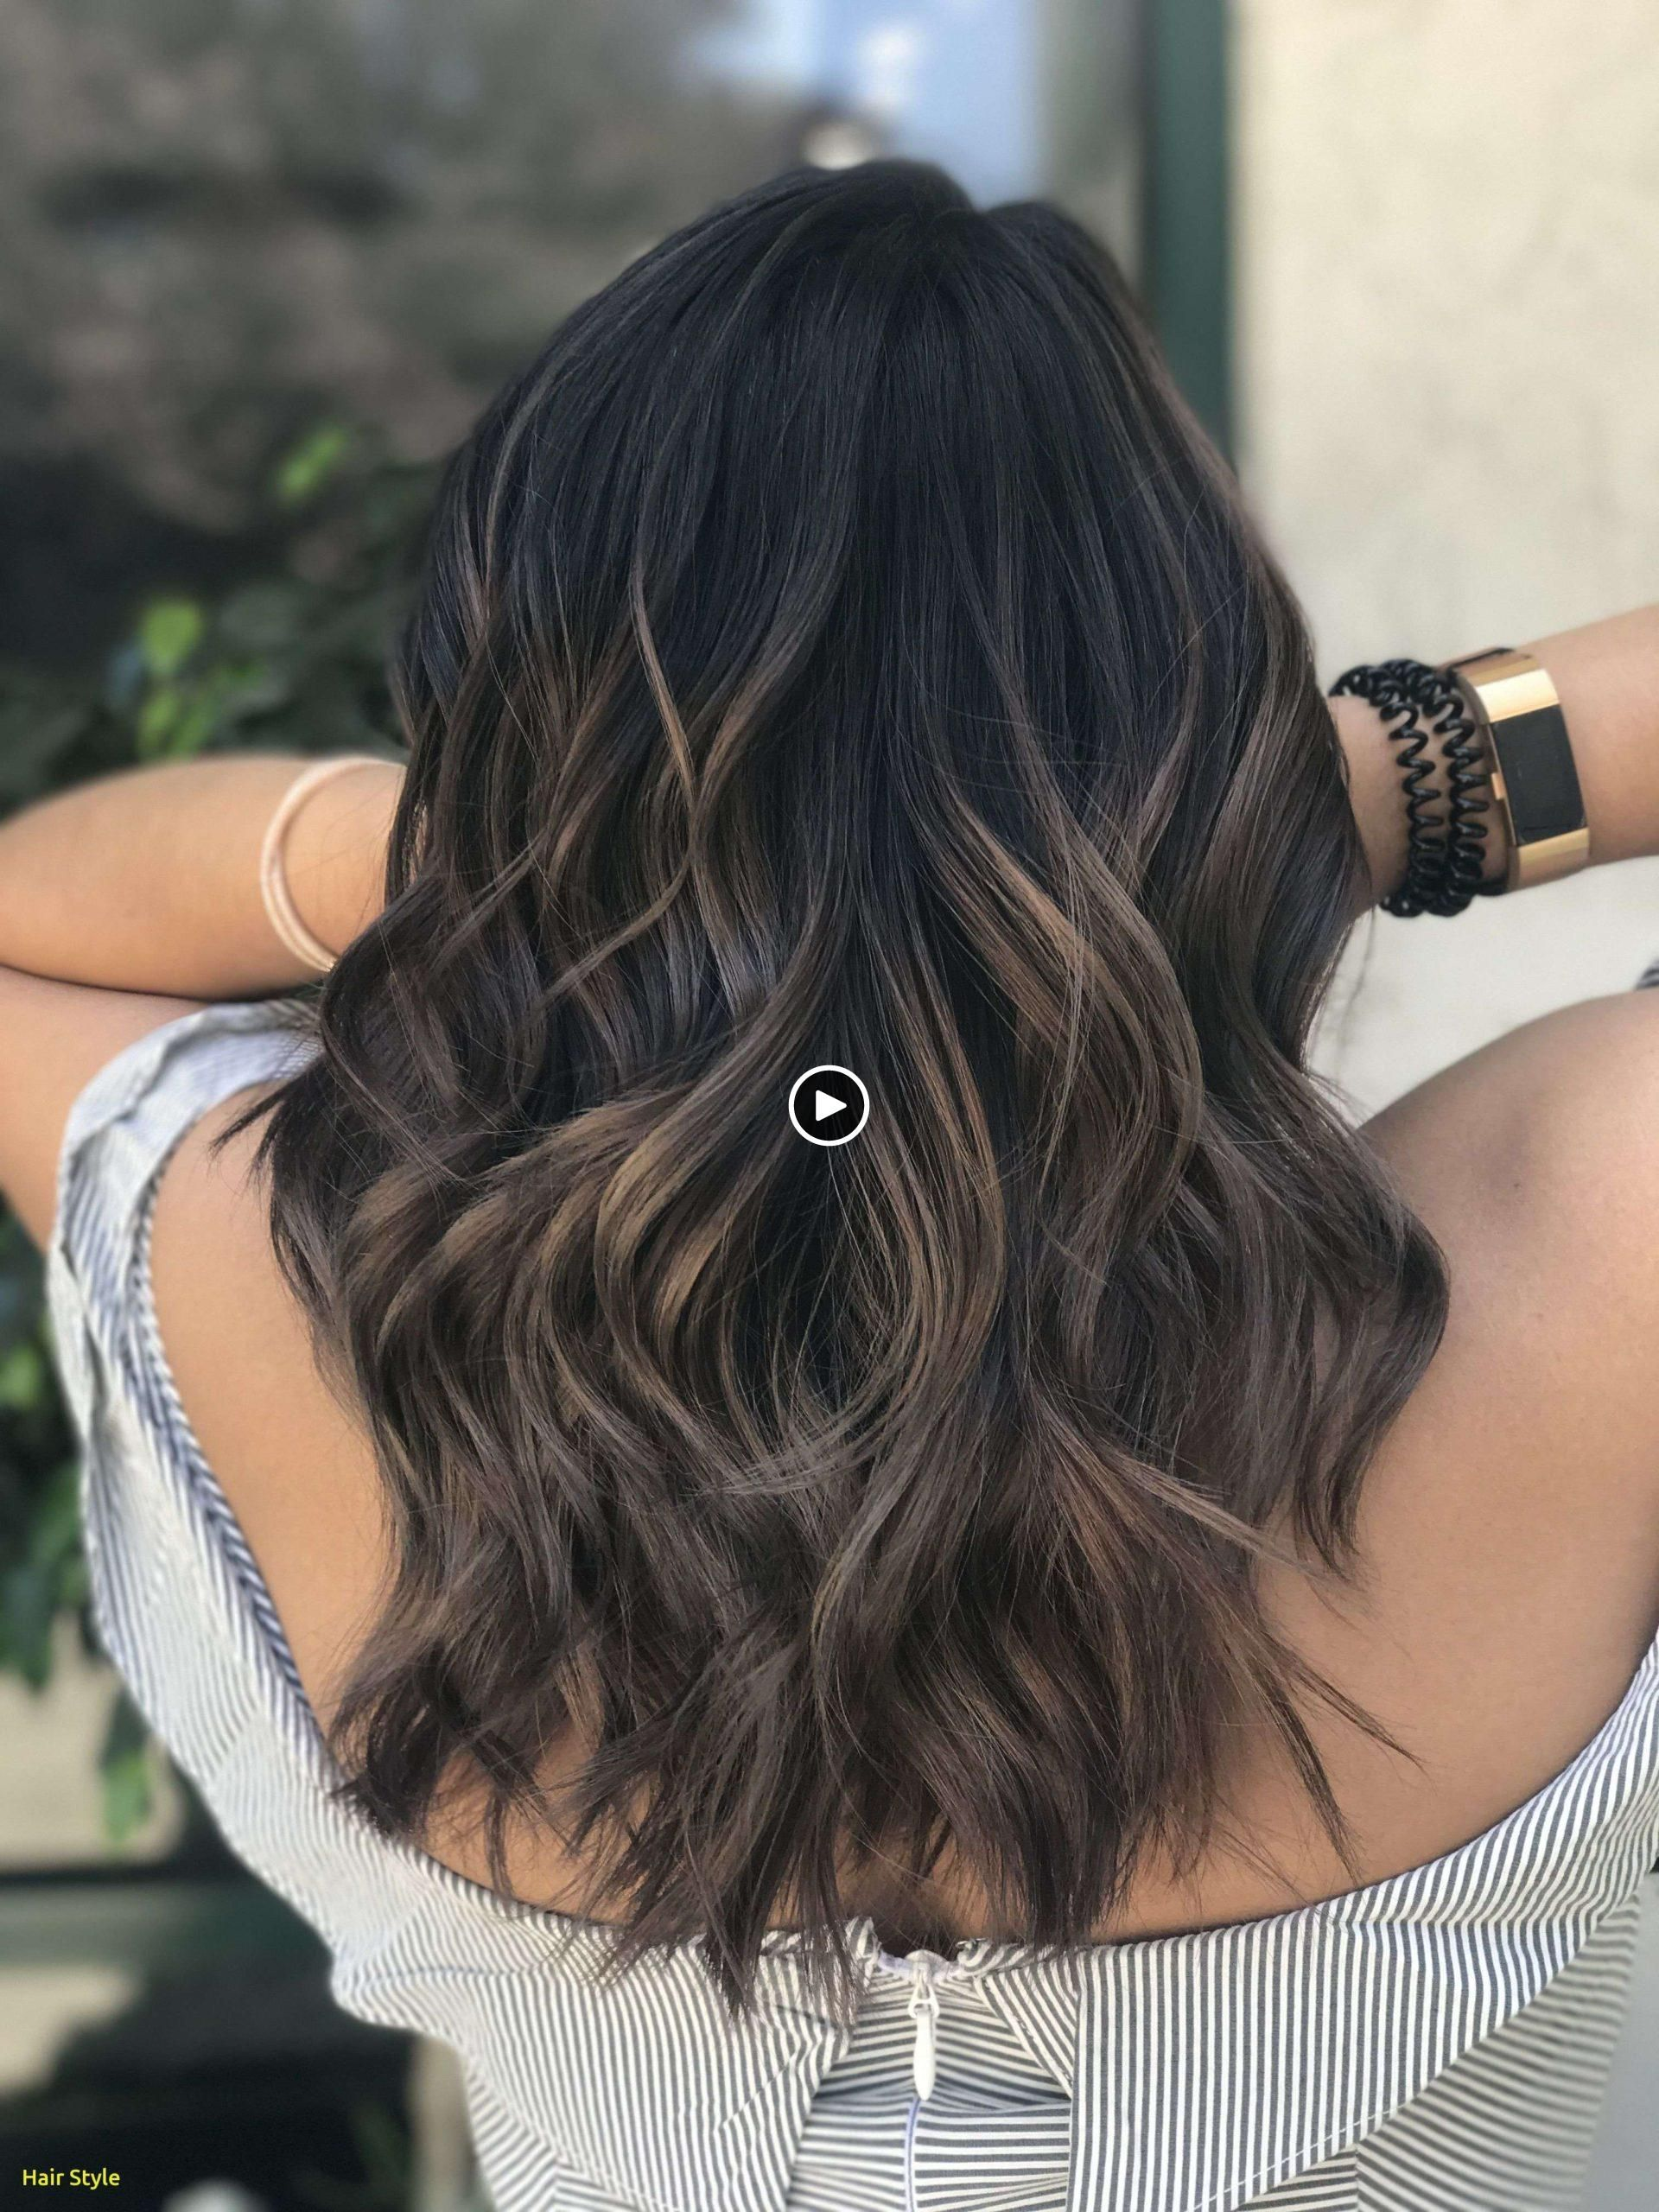 Fantastic Hair Color For Indian Men New Hairstyles Styles 2019 In 2020 Hair Highlights Rich Brown Hair Hair Color For Black Hair